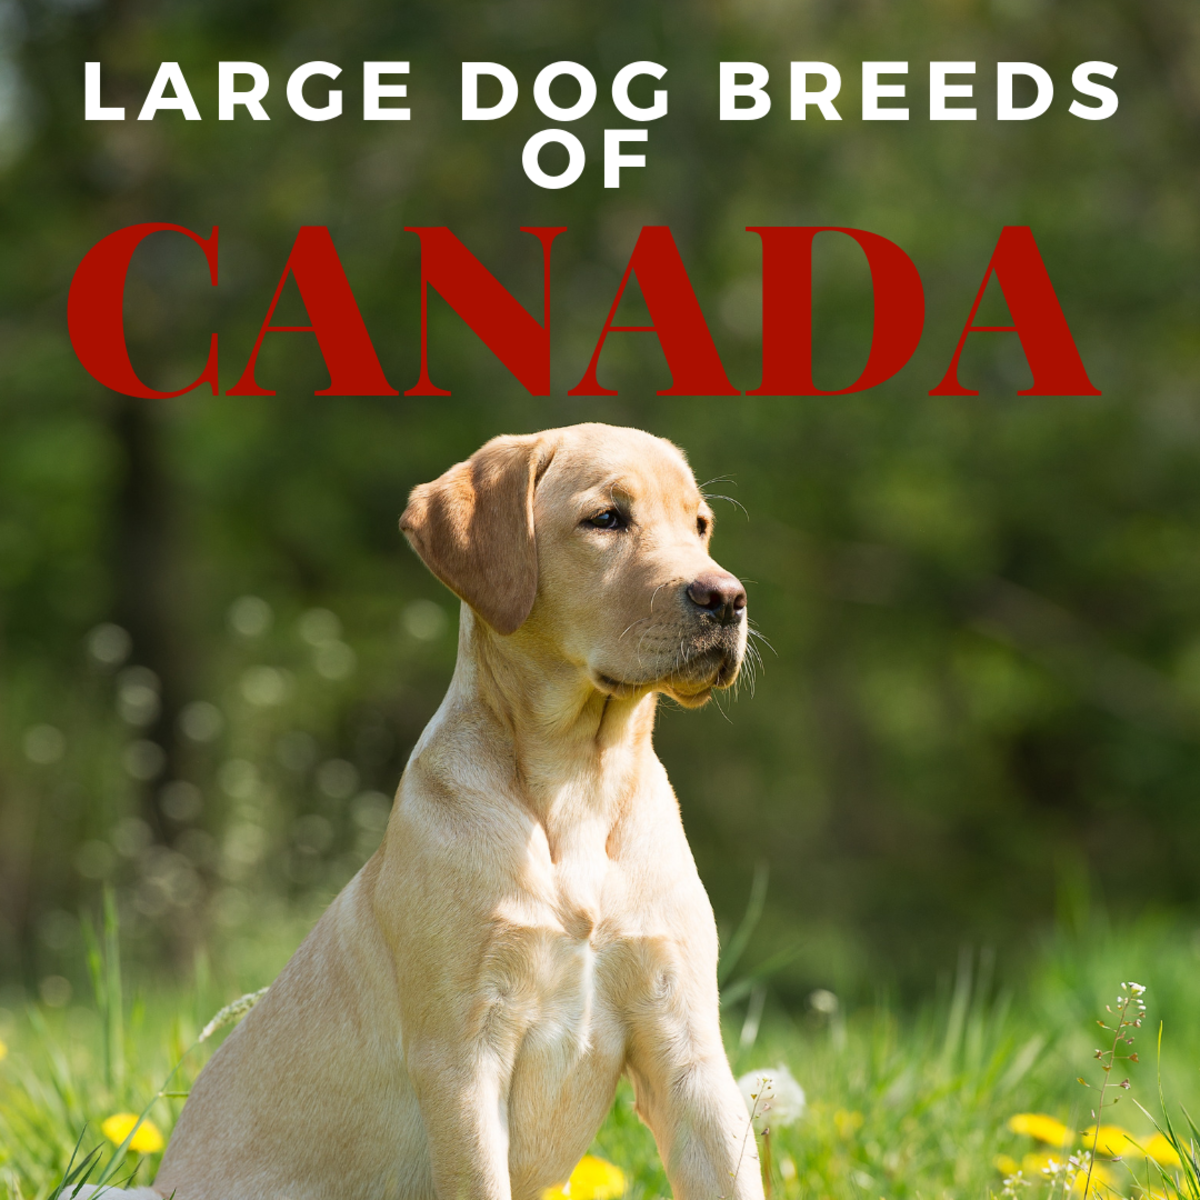 Labrador Retrievers are built to handle the Canadian snow.